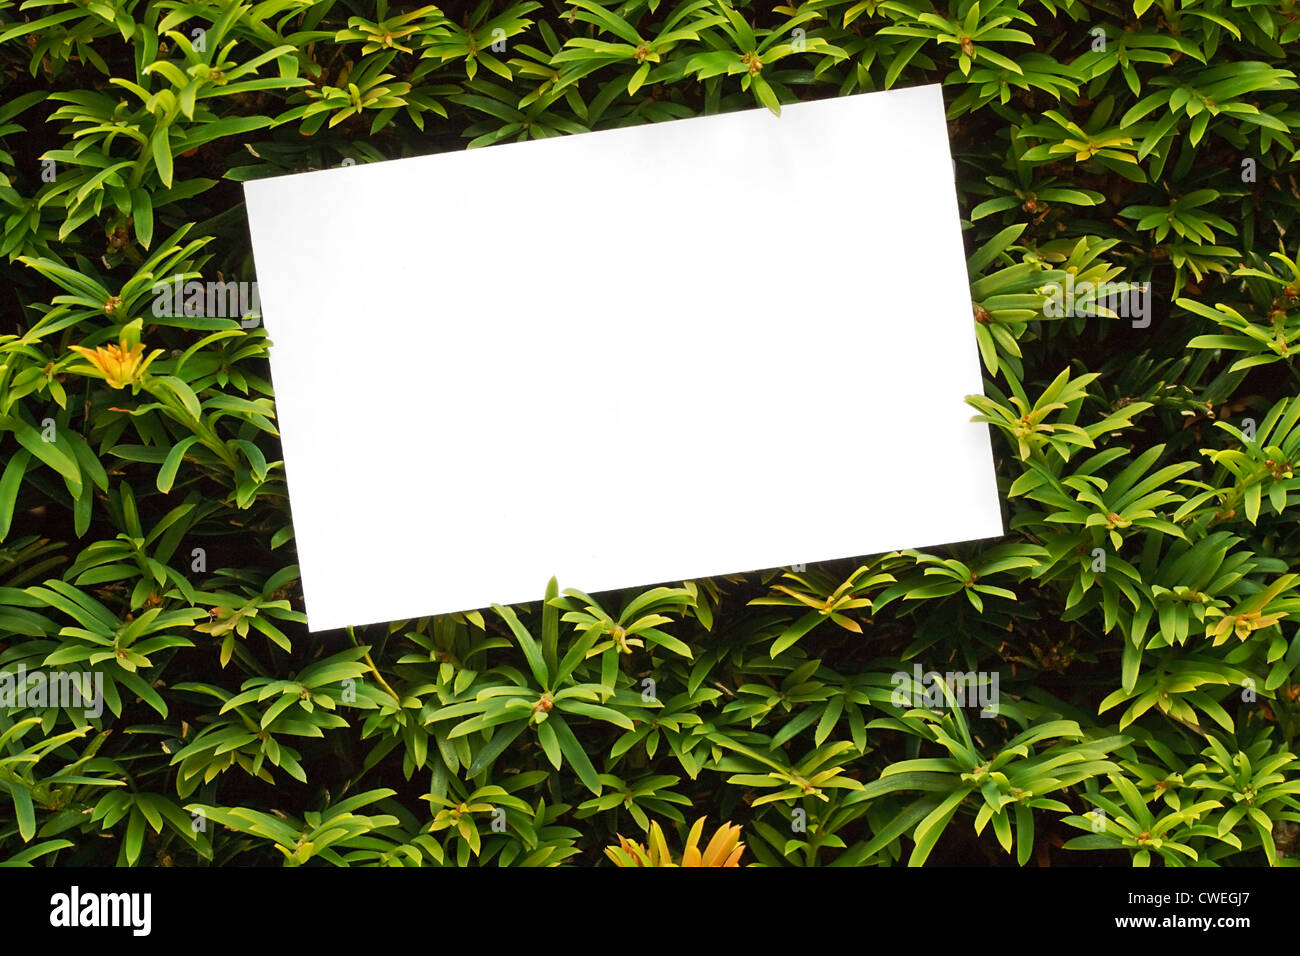 Topiary bush frame or hedge border good for country houses, stately homes, Garden centres or landscape designers - Stock Image